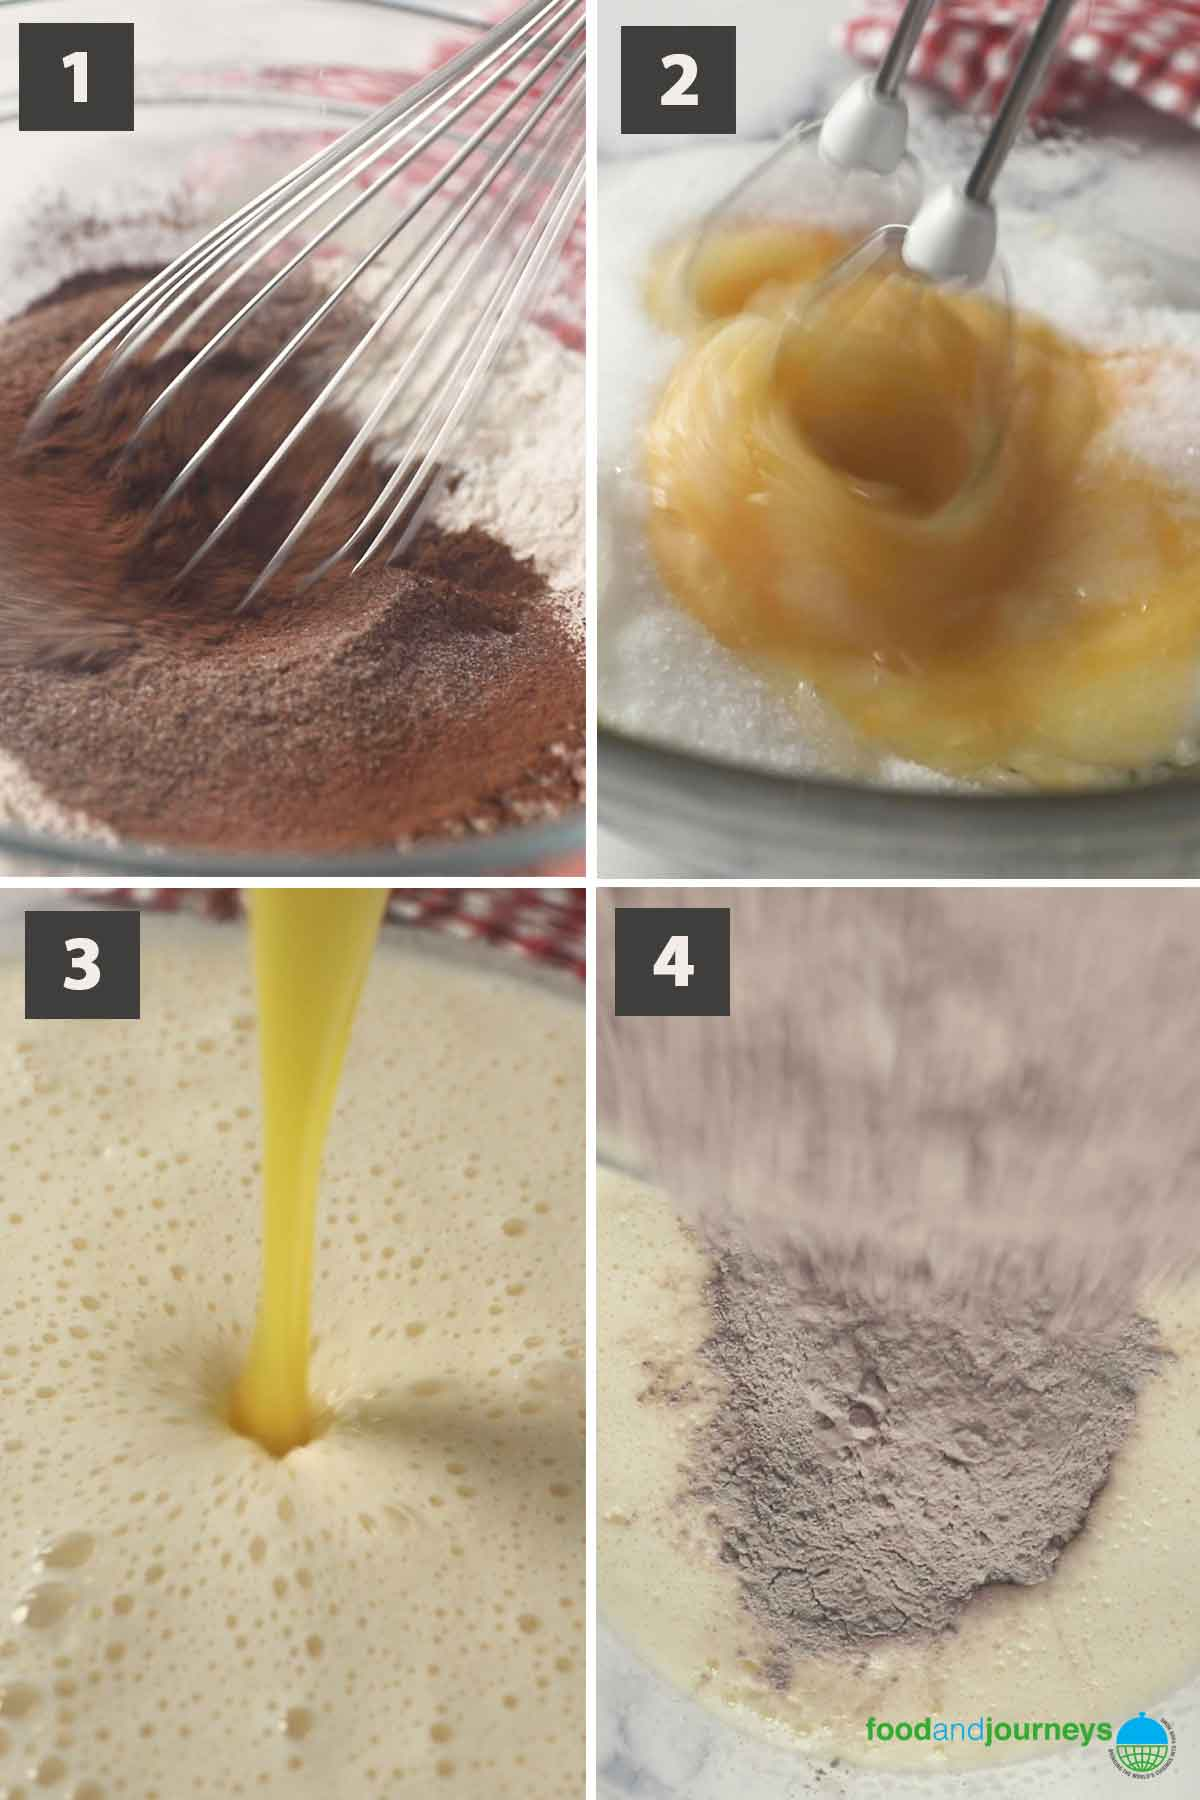 First part of a collage of images showing the step by step process of making Swedish Chocolate Coconut Cake at home.